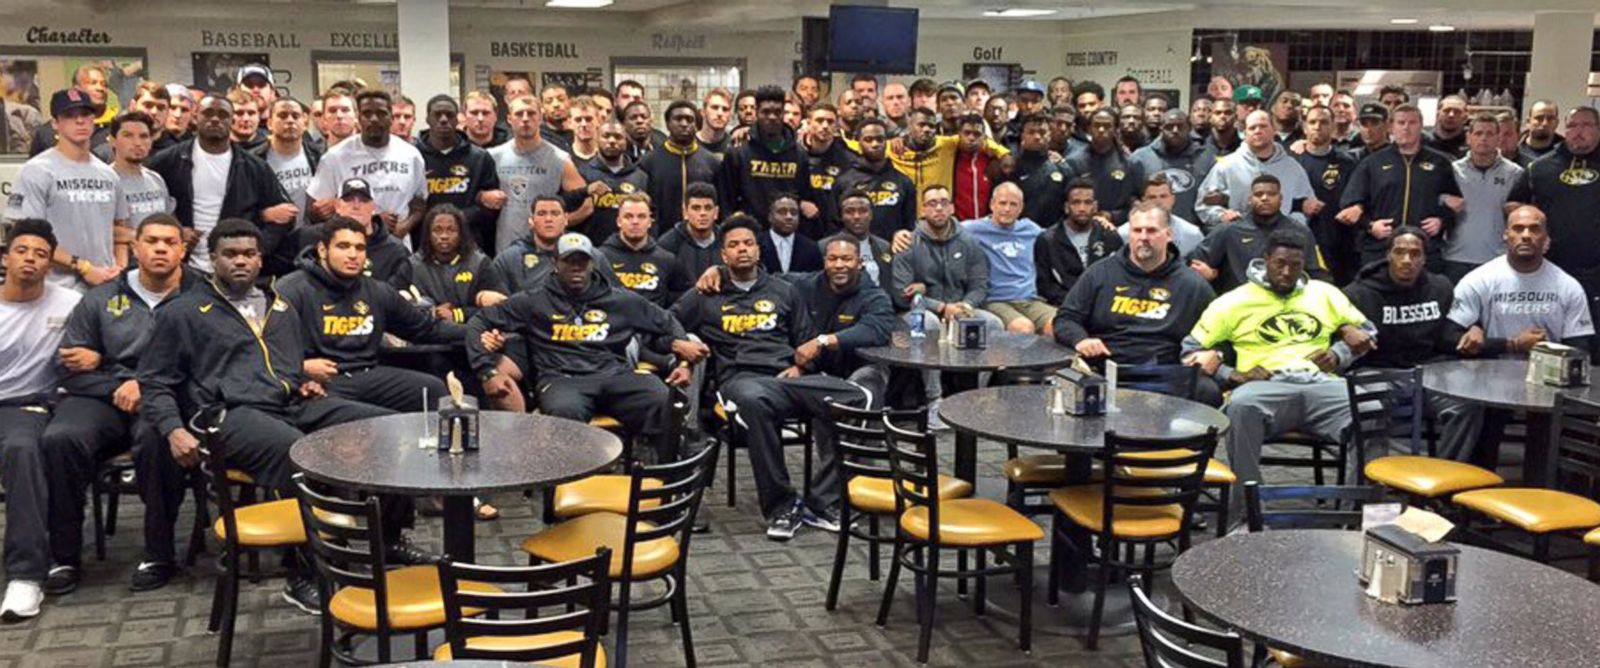 "PHOTO: The University of Missouris head coachs twitter, @GaryPinkel, tweeted this photo with the caption, ""The Mizzou Family stands as one. We are united. We are behind our players. #ConcernedStudent1950 GP,"" on Nov. 8, 2015."